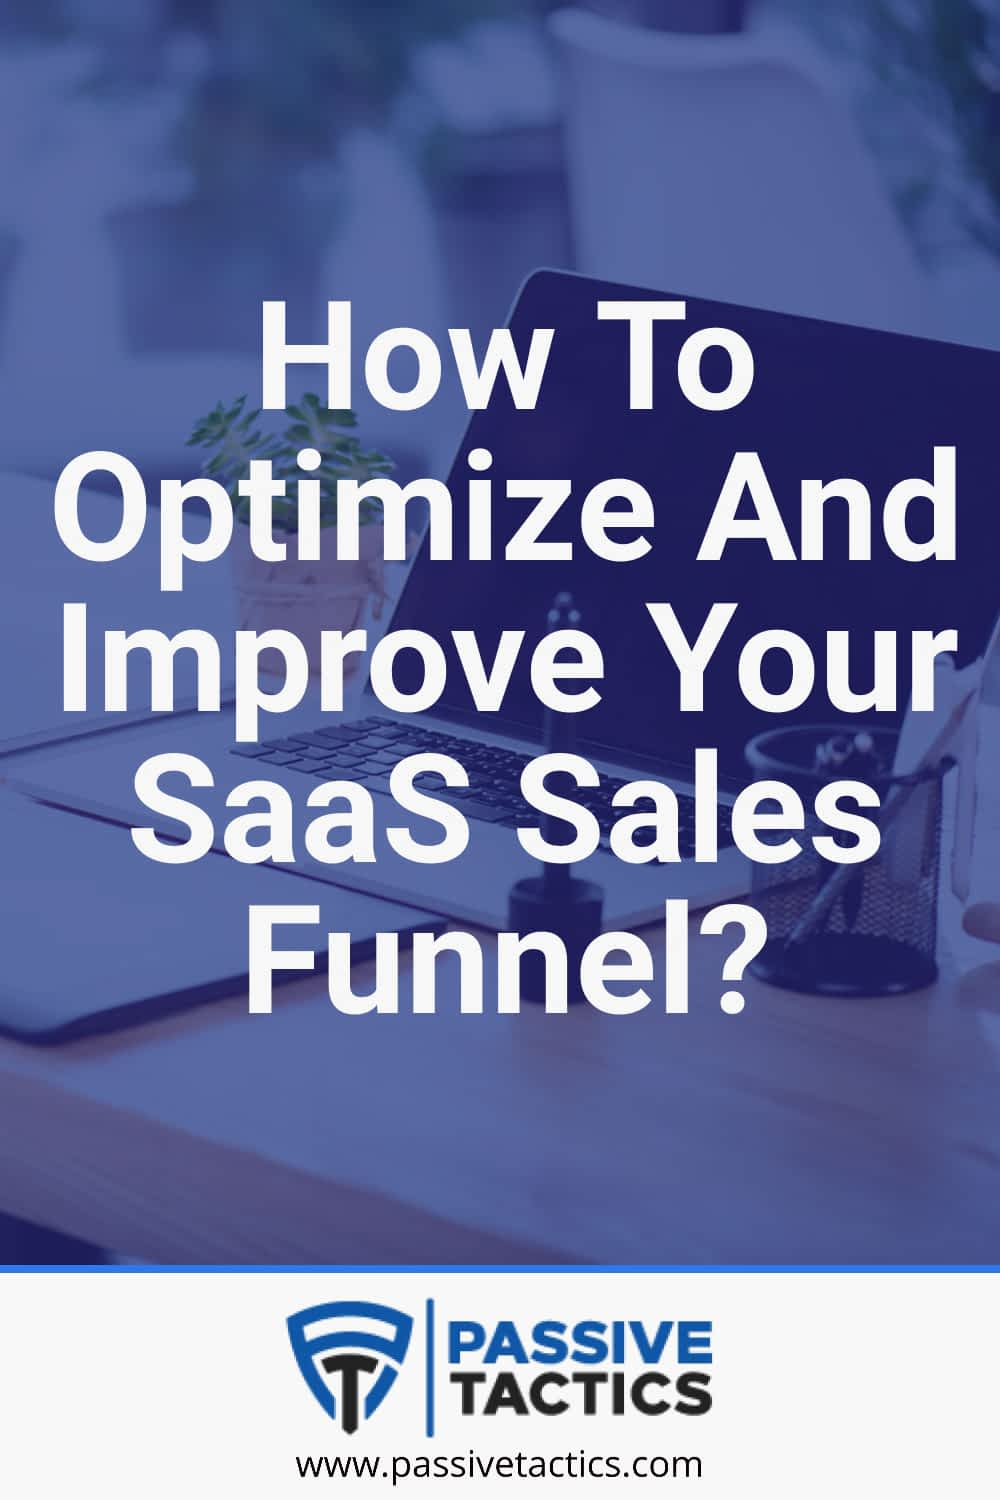 How To Optimize And Improve Your SaaS Sales Funnel?